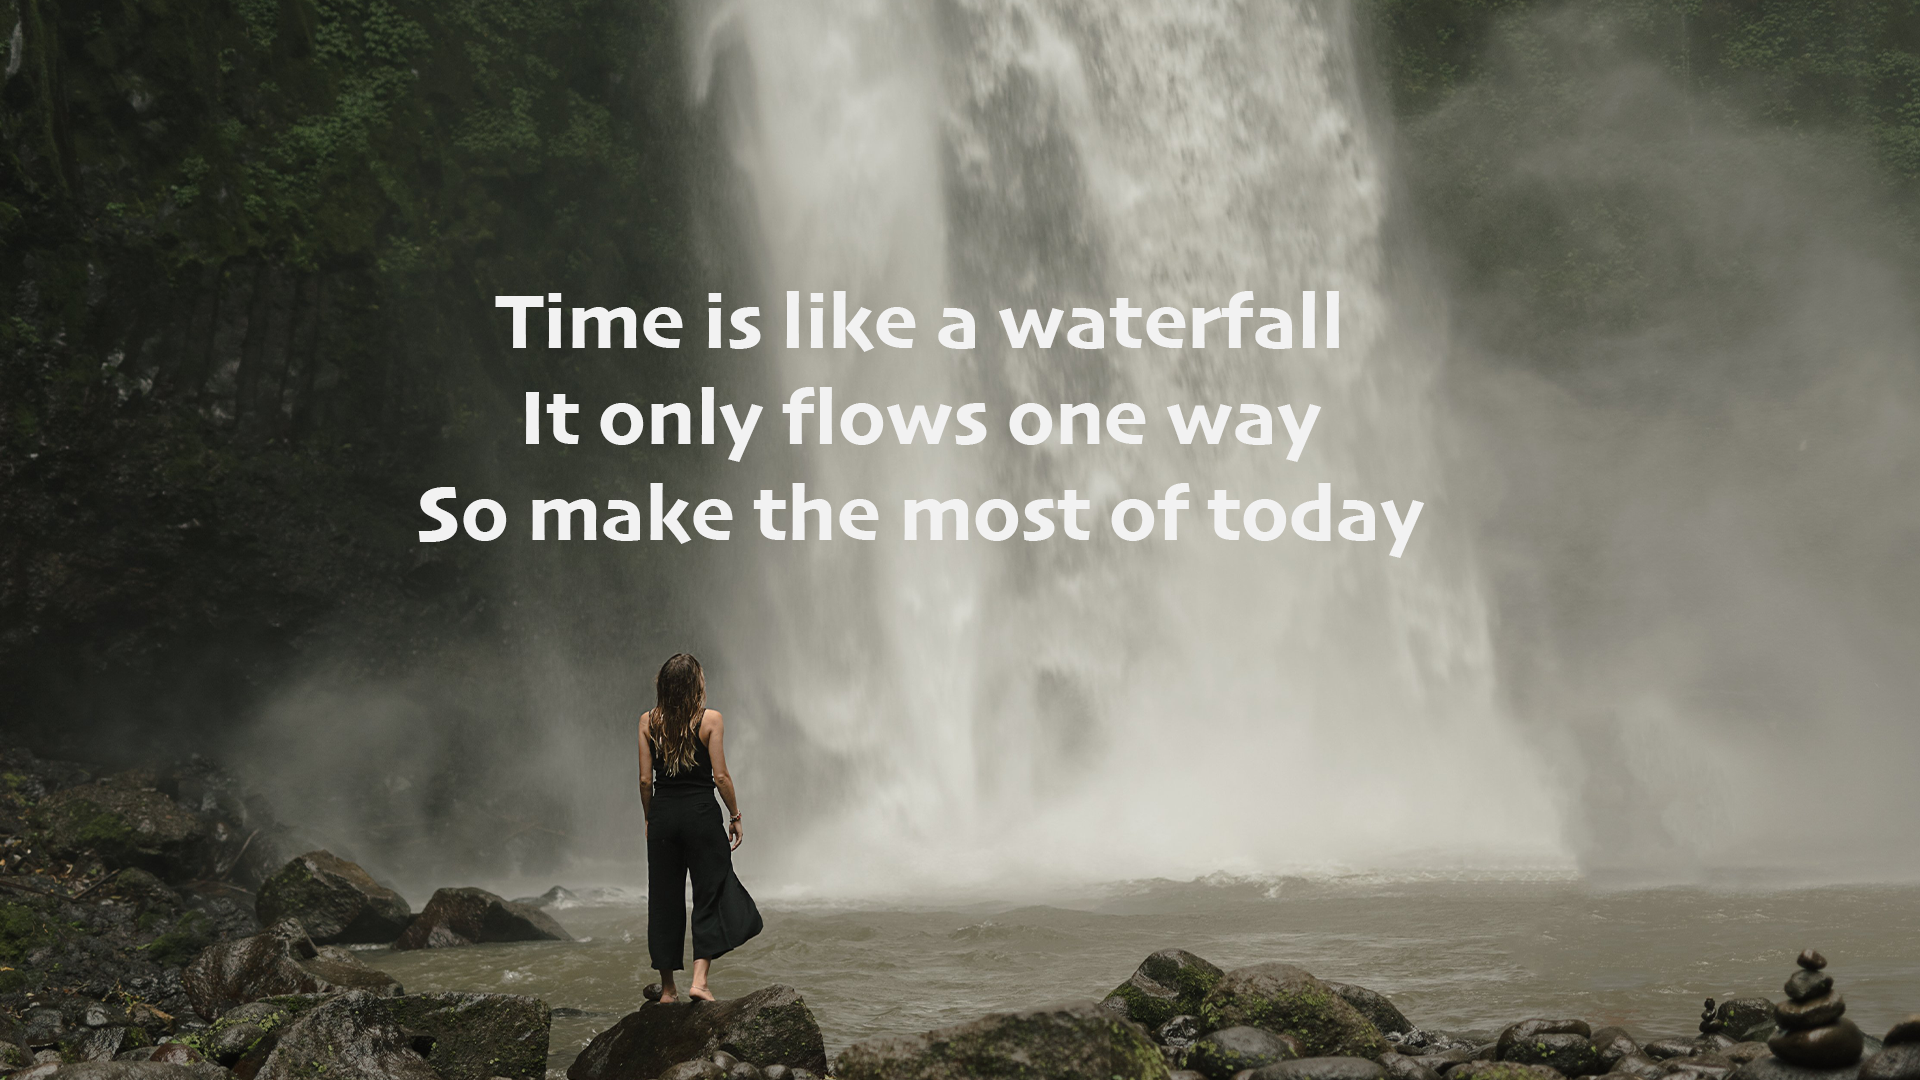 Time Is Like A Waterfall, It Only Flows One Way, So Make The Most Of Today